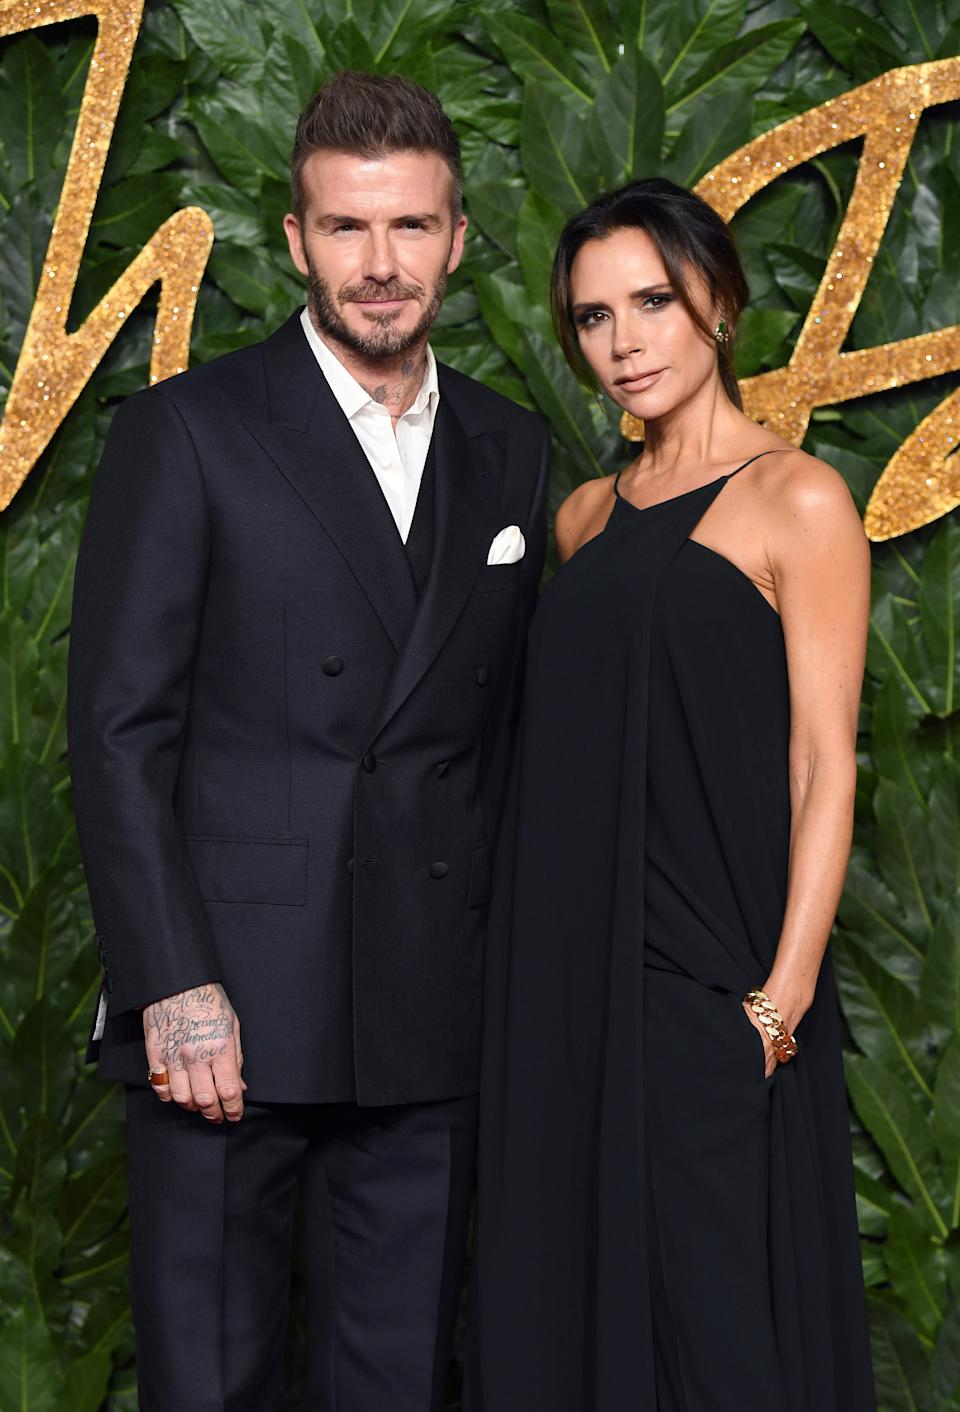 <p>The Beckhams have transcended their football and Spice Girl pasts to become an entity of their own. The pair have managed to break-into the Hollywood scene after finding success across the pond and remain strong after more than 21 years of marriage. <em>(Image via Getty Images)</em></p>